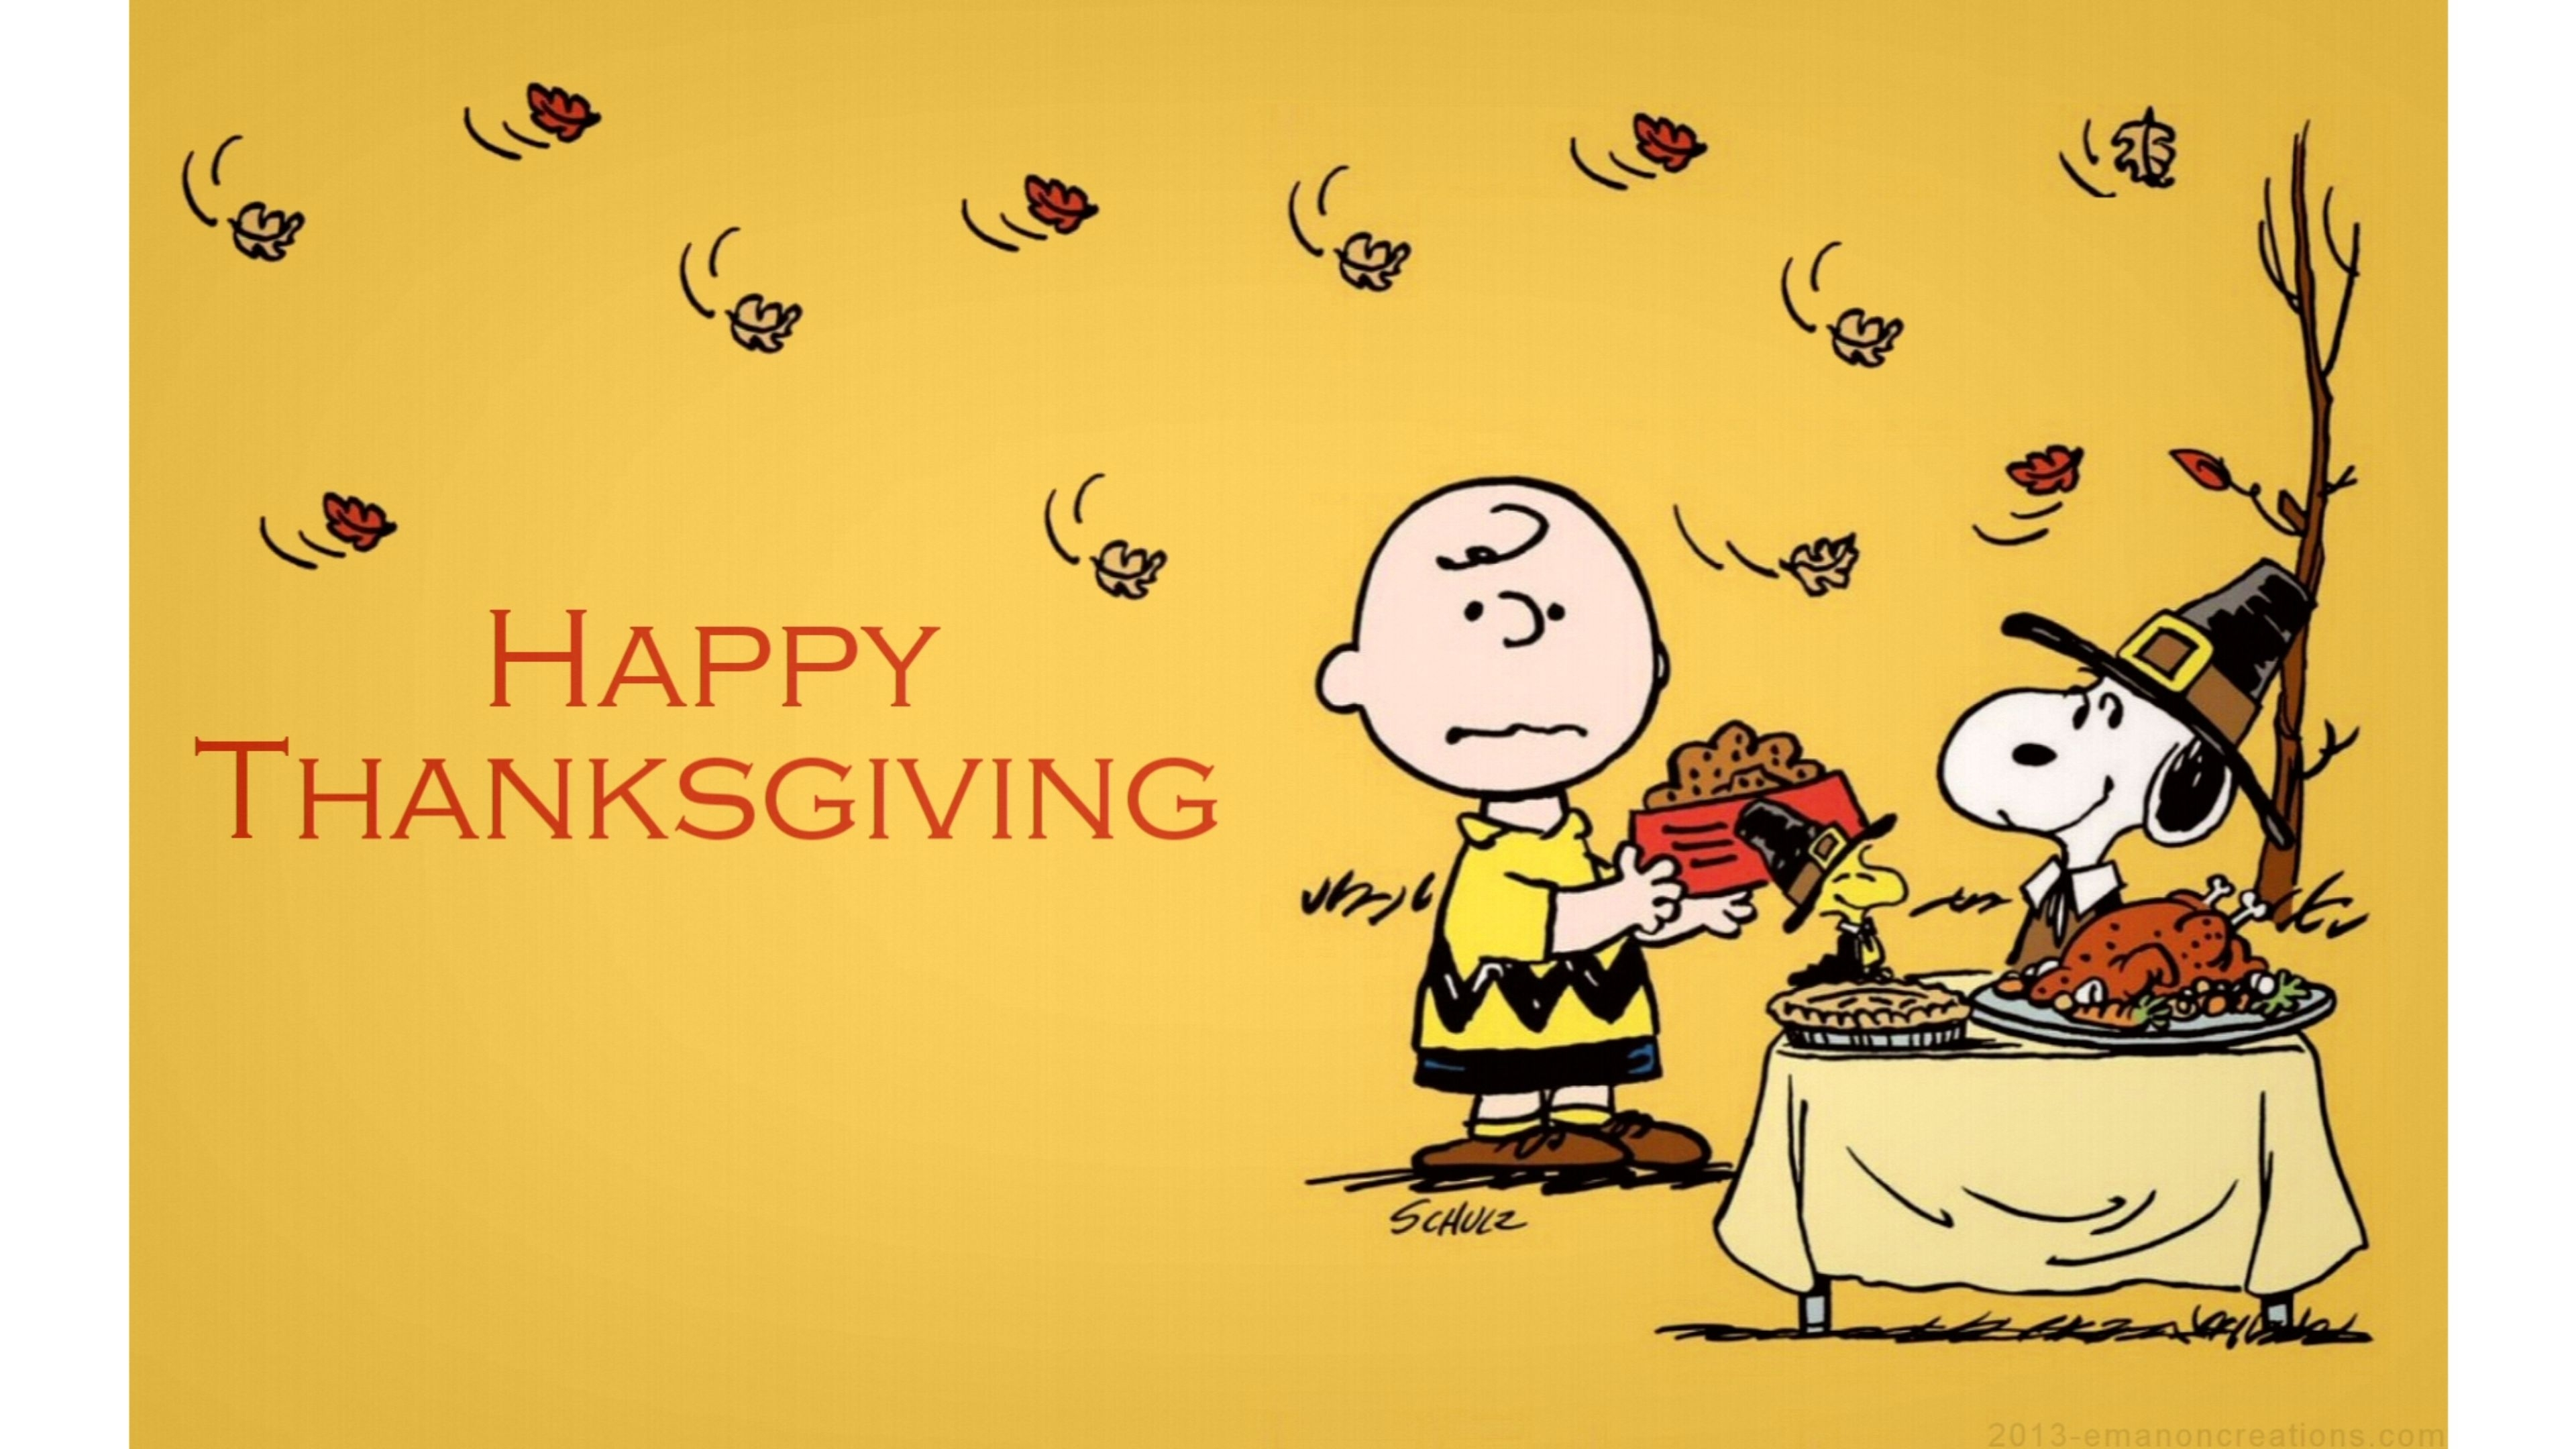 charlie brown thanksgiving 4k wallpaper | free 4k wallpaper